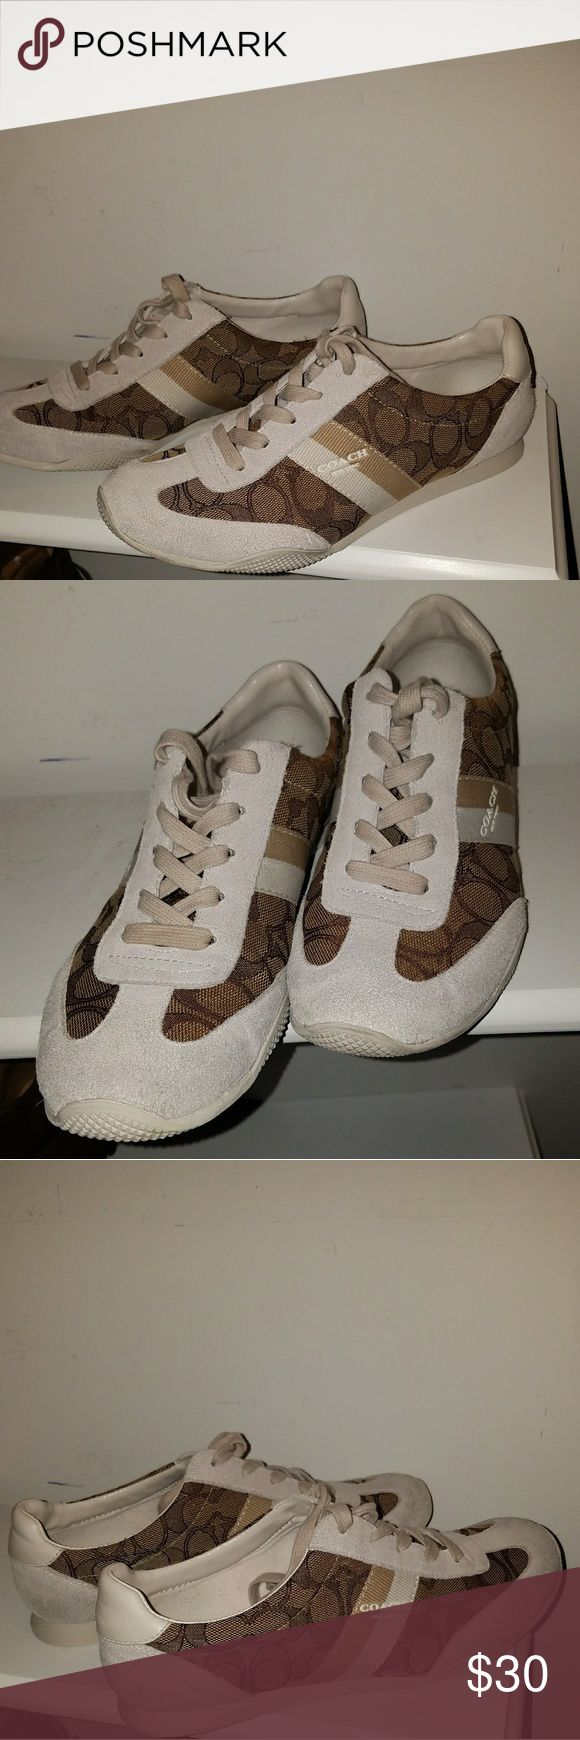 Coach tennis shoes Coach tennis shoes. EUC. In very good condition! These are an exact 8.5, if you run between an 8.5 and 9 they may be to tight. Coach Shoes Sneakers